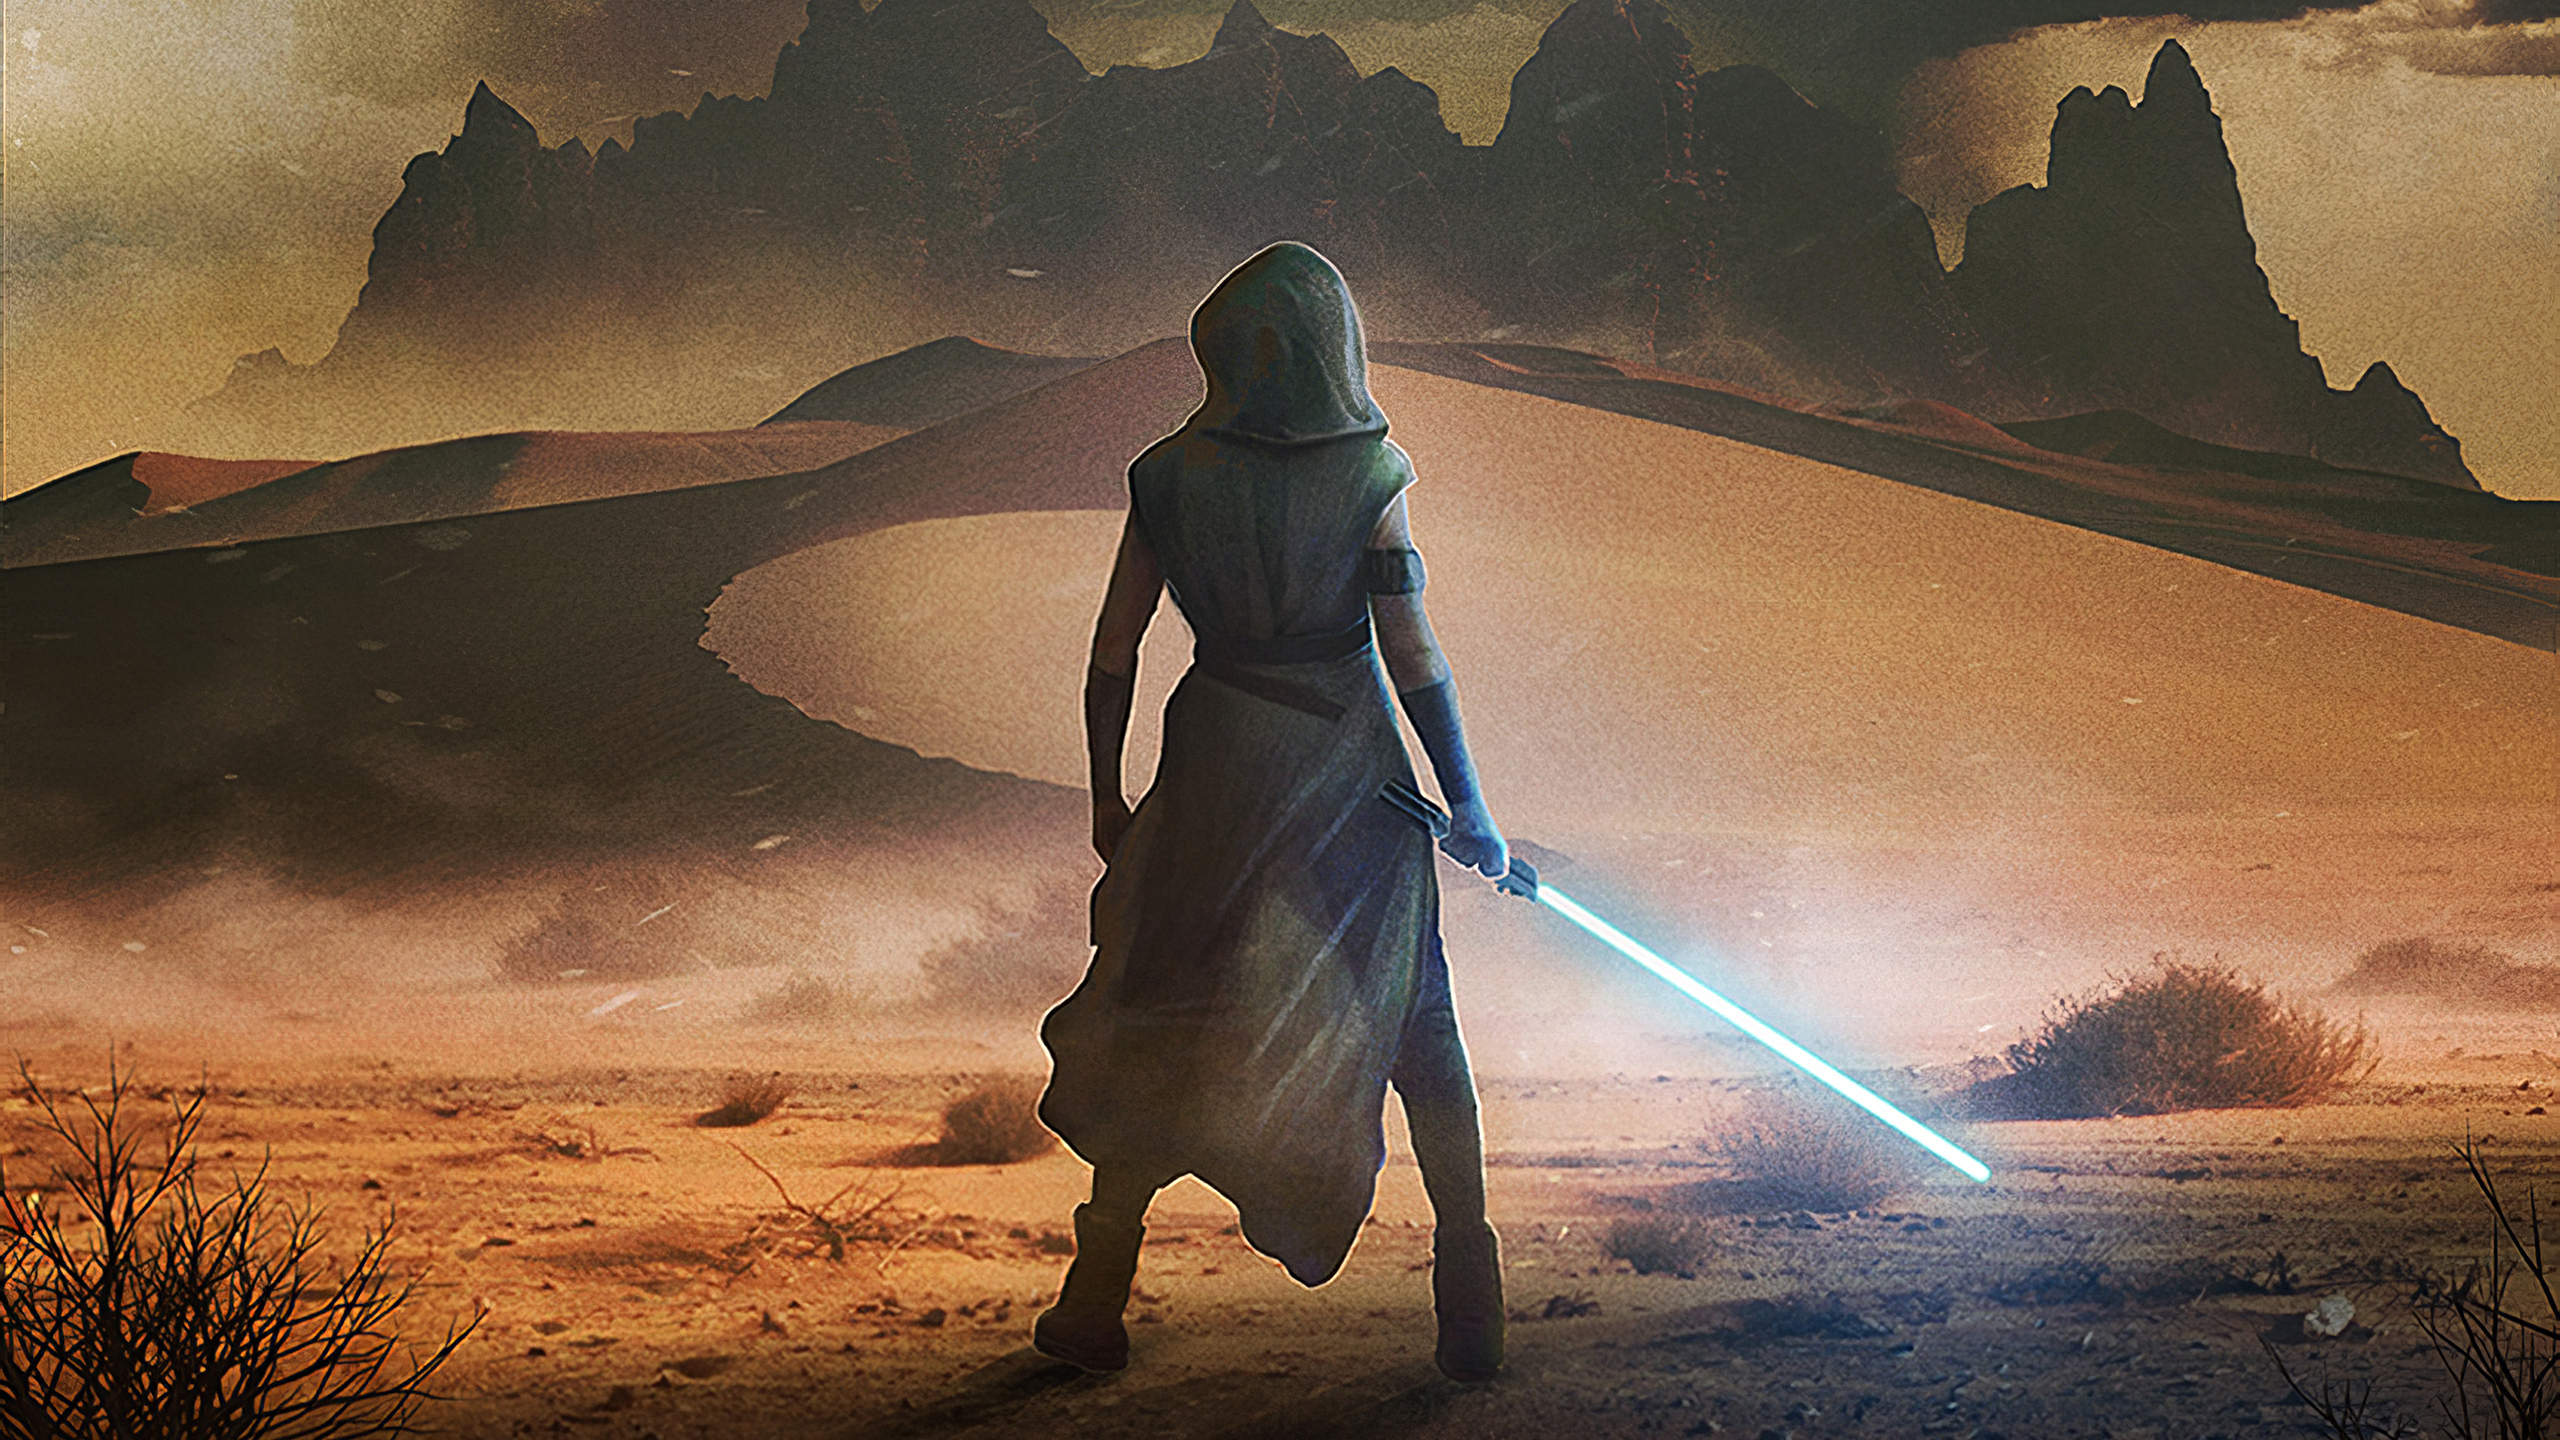 star-wars-the-rise-of-skywalker-arts-o8.jpg